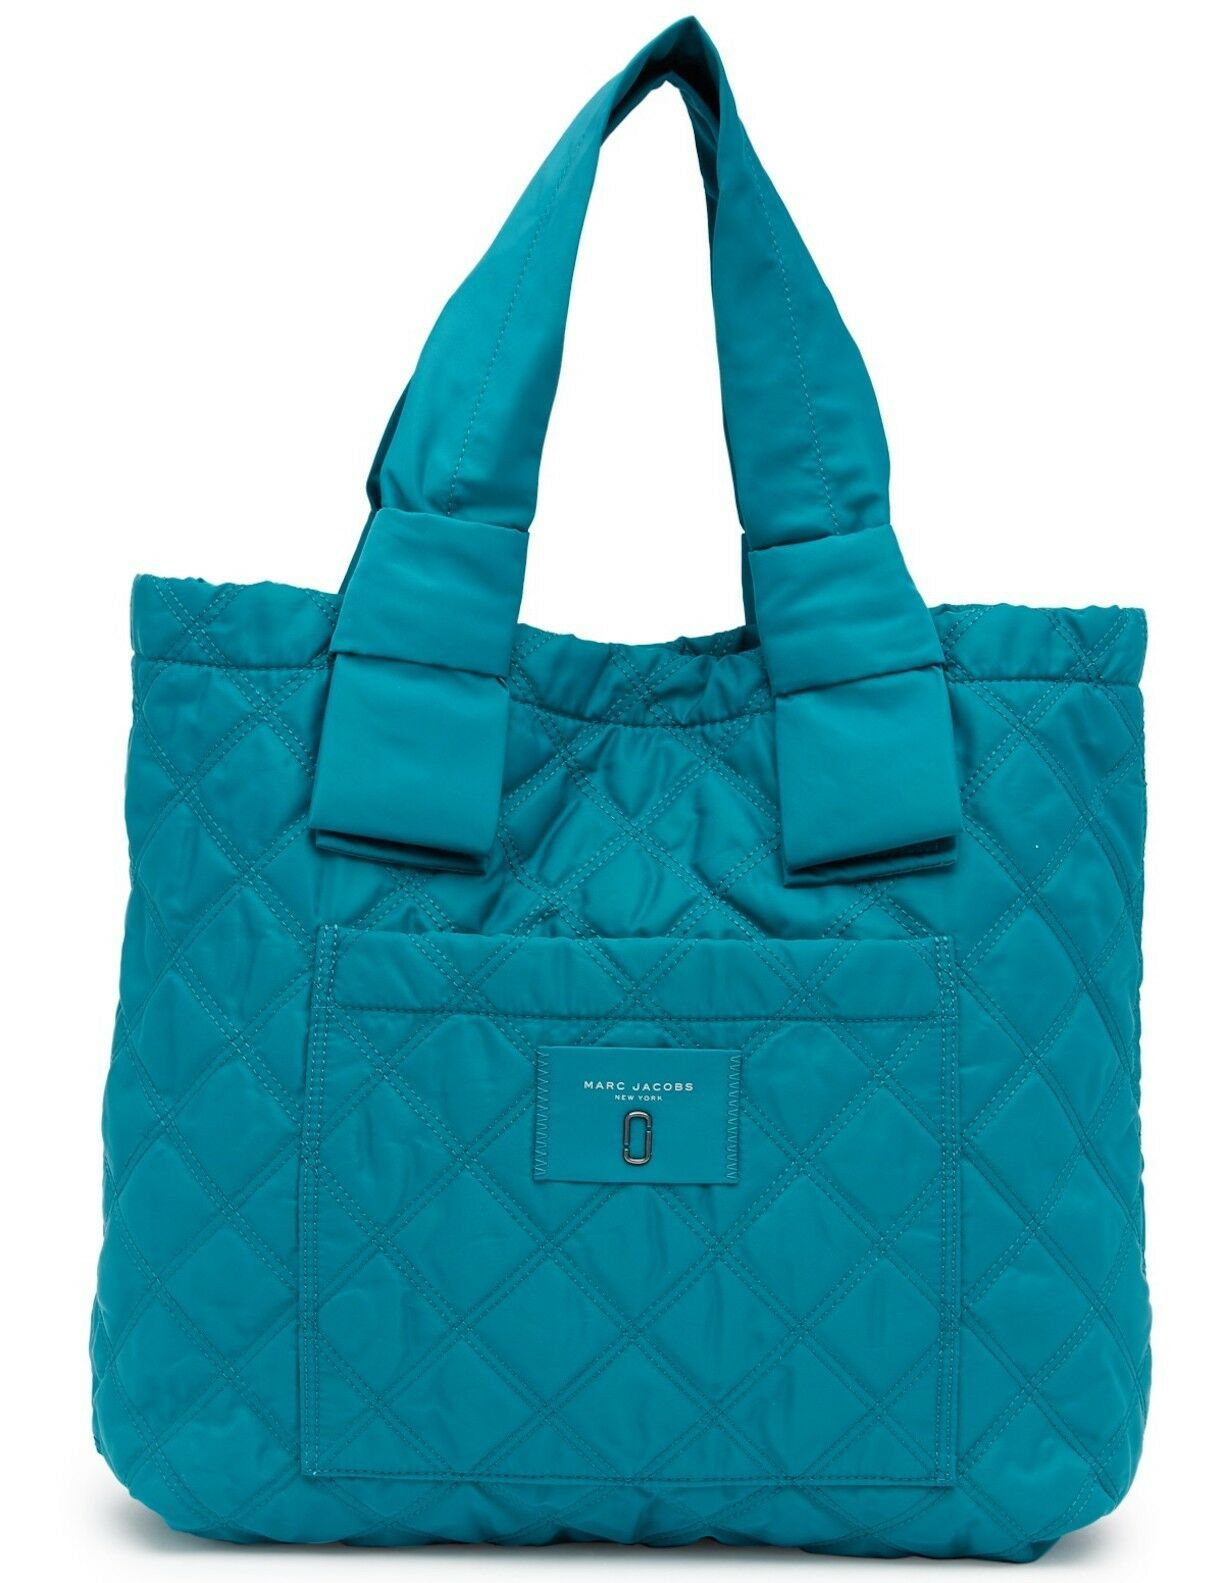 Primary image for Marc Jacobs Bag Diamond Quilted Nylon Large Tote NEW